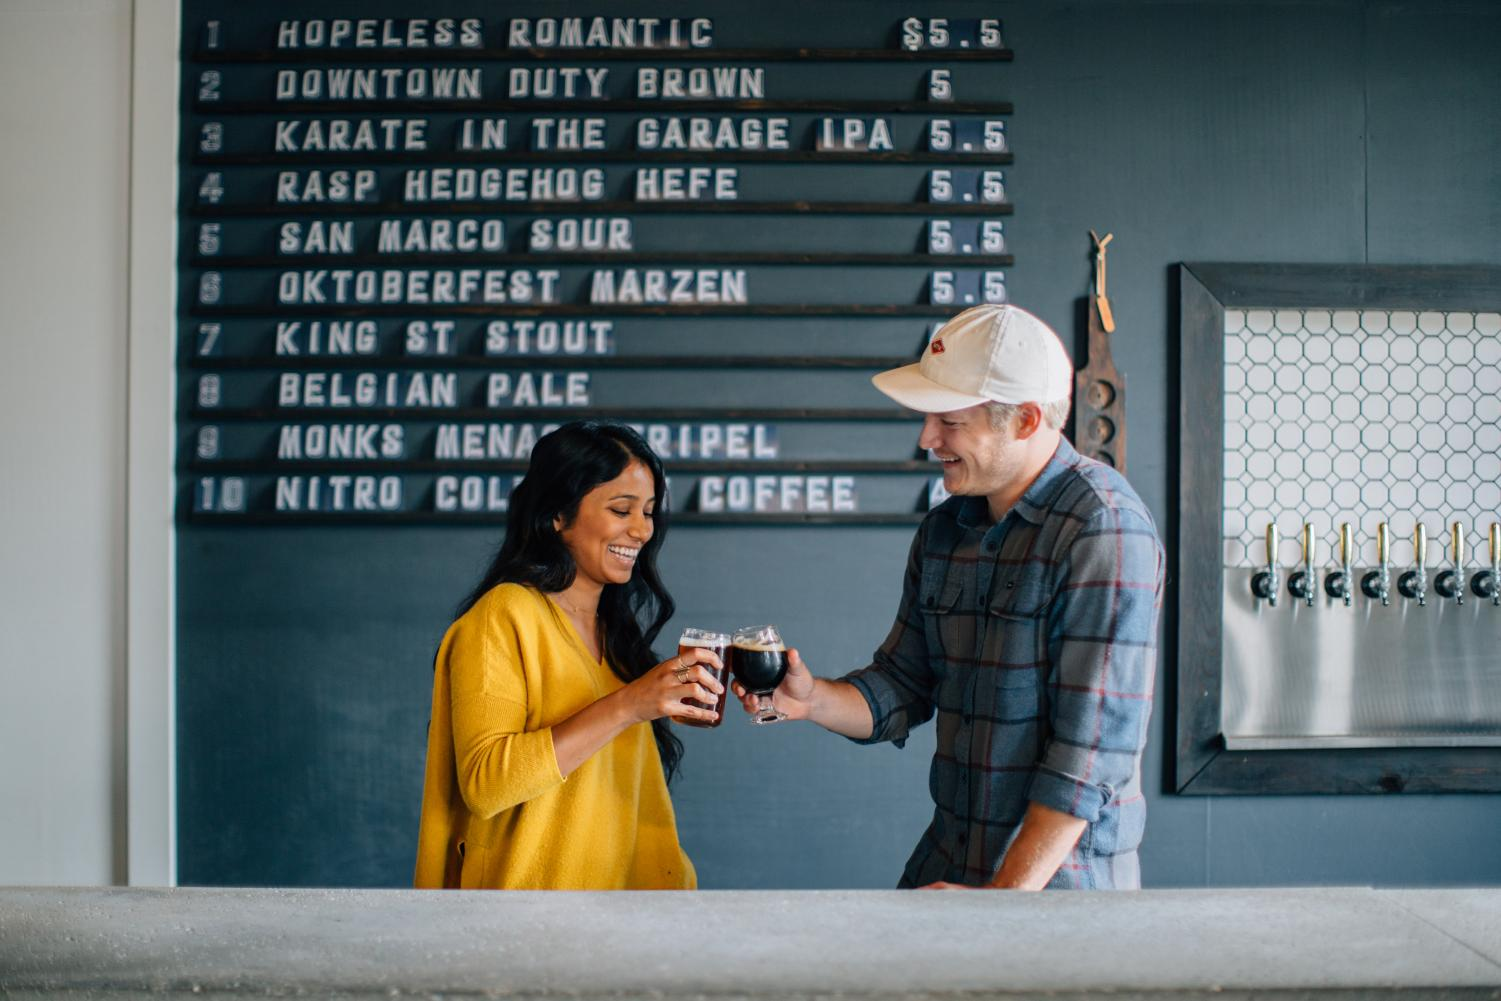 Alex and Priya Moldovan, owners of Town Beer Co., cheering as they have a glass of locally crafted beer.